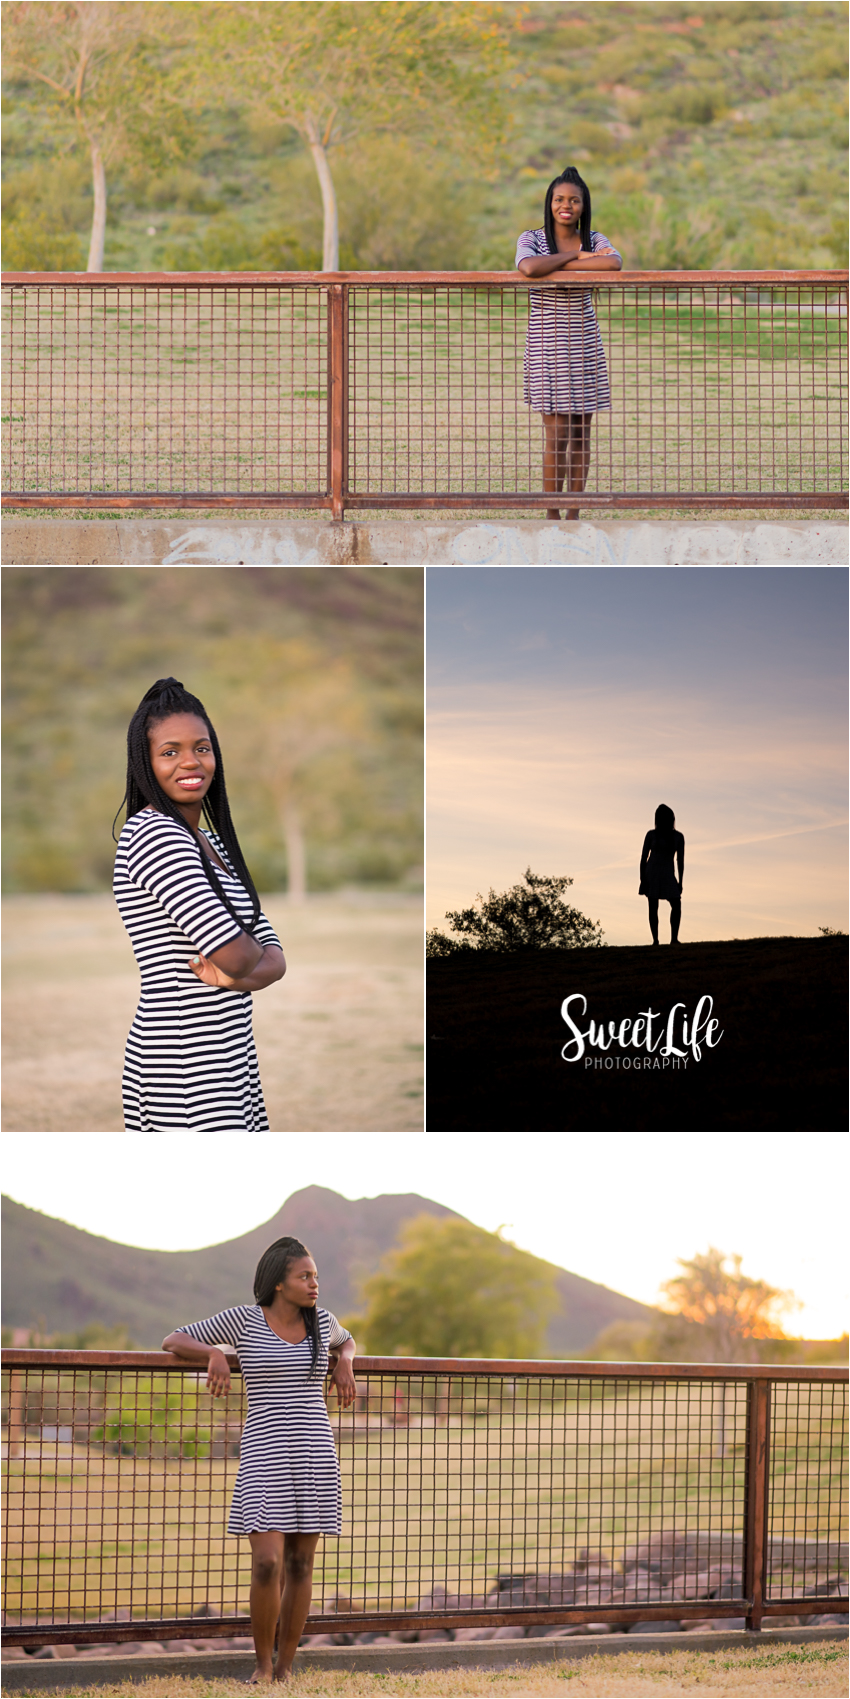 North Glendale High School Senior Portait Photographer {www.sweetlife-photography.com}